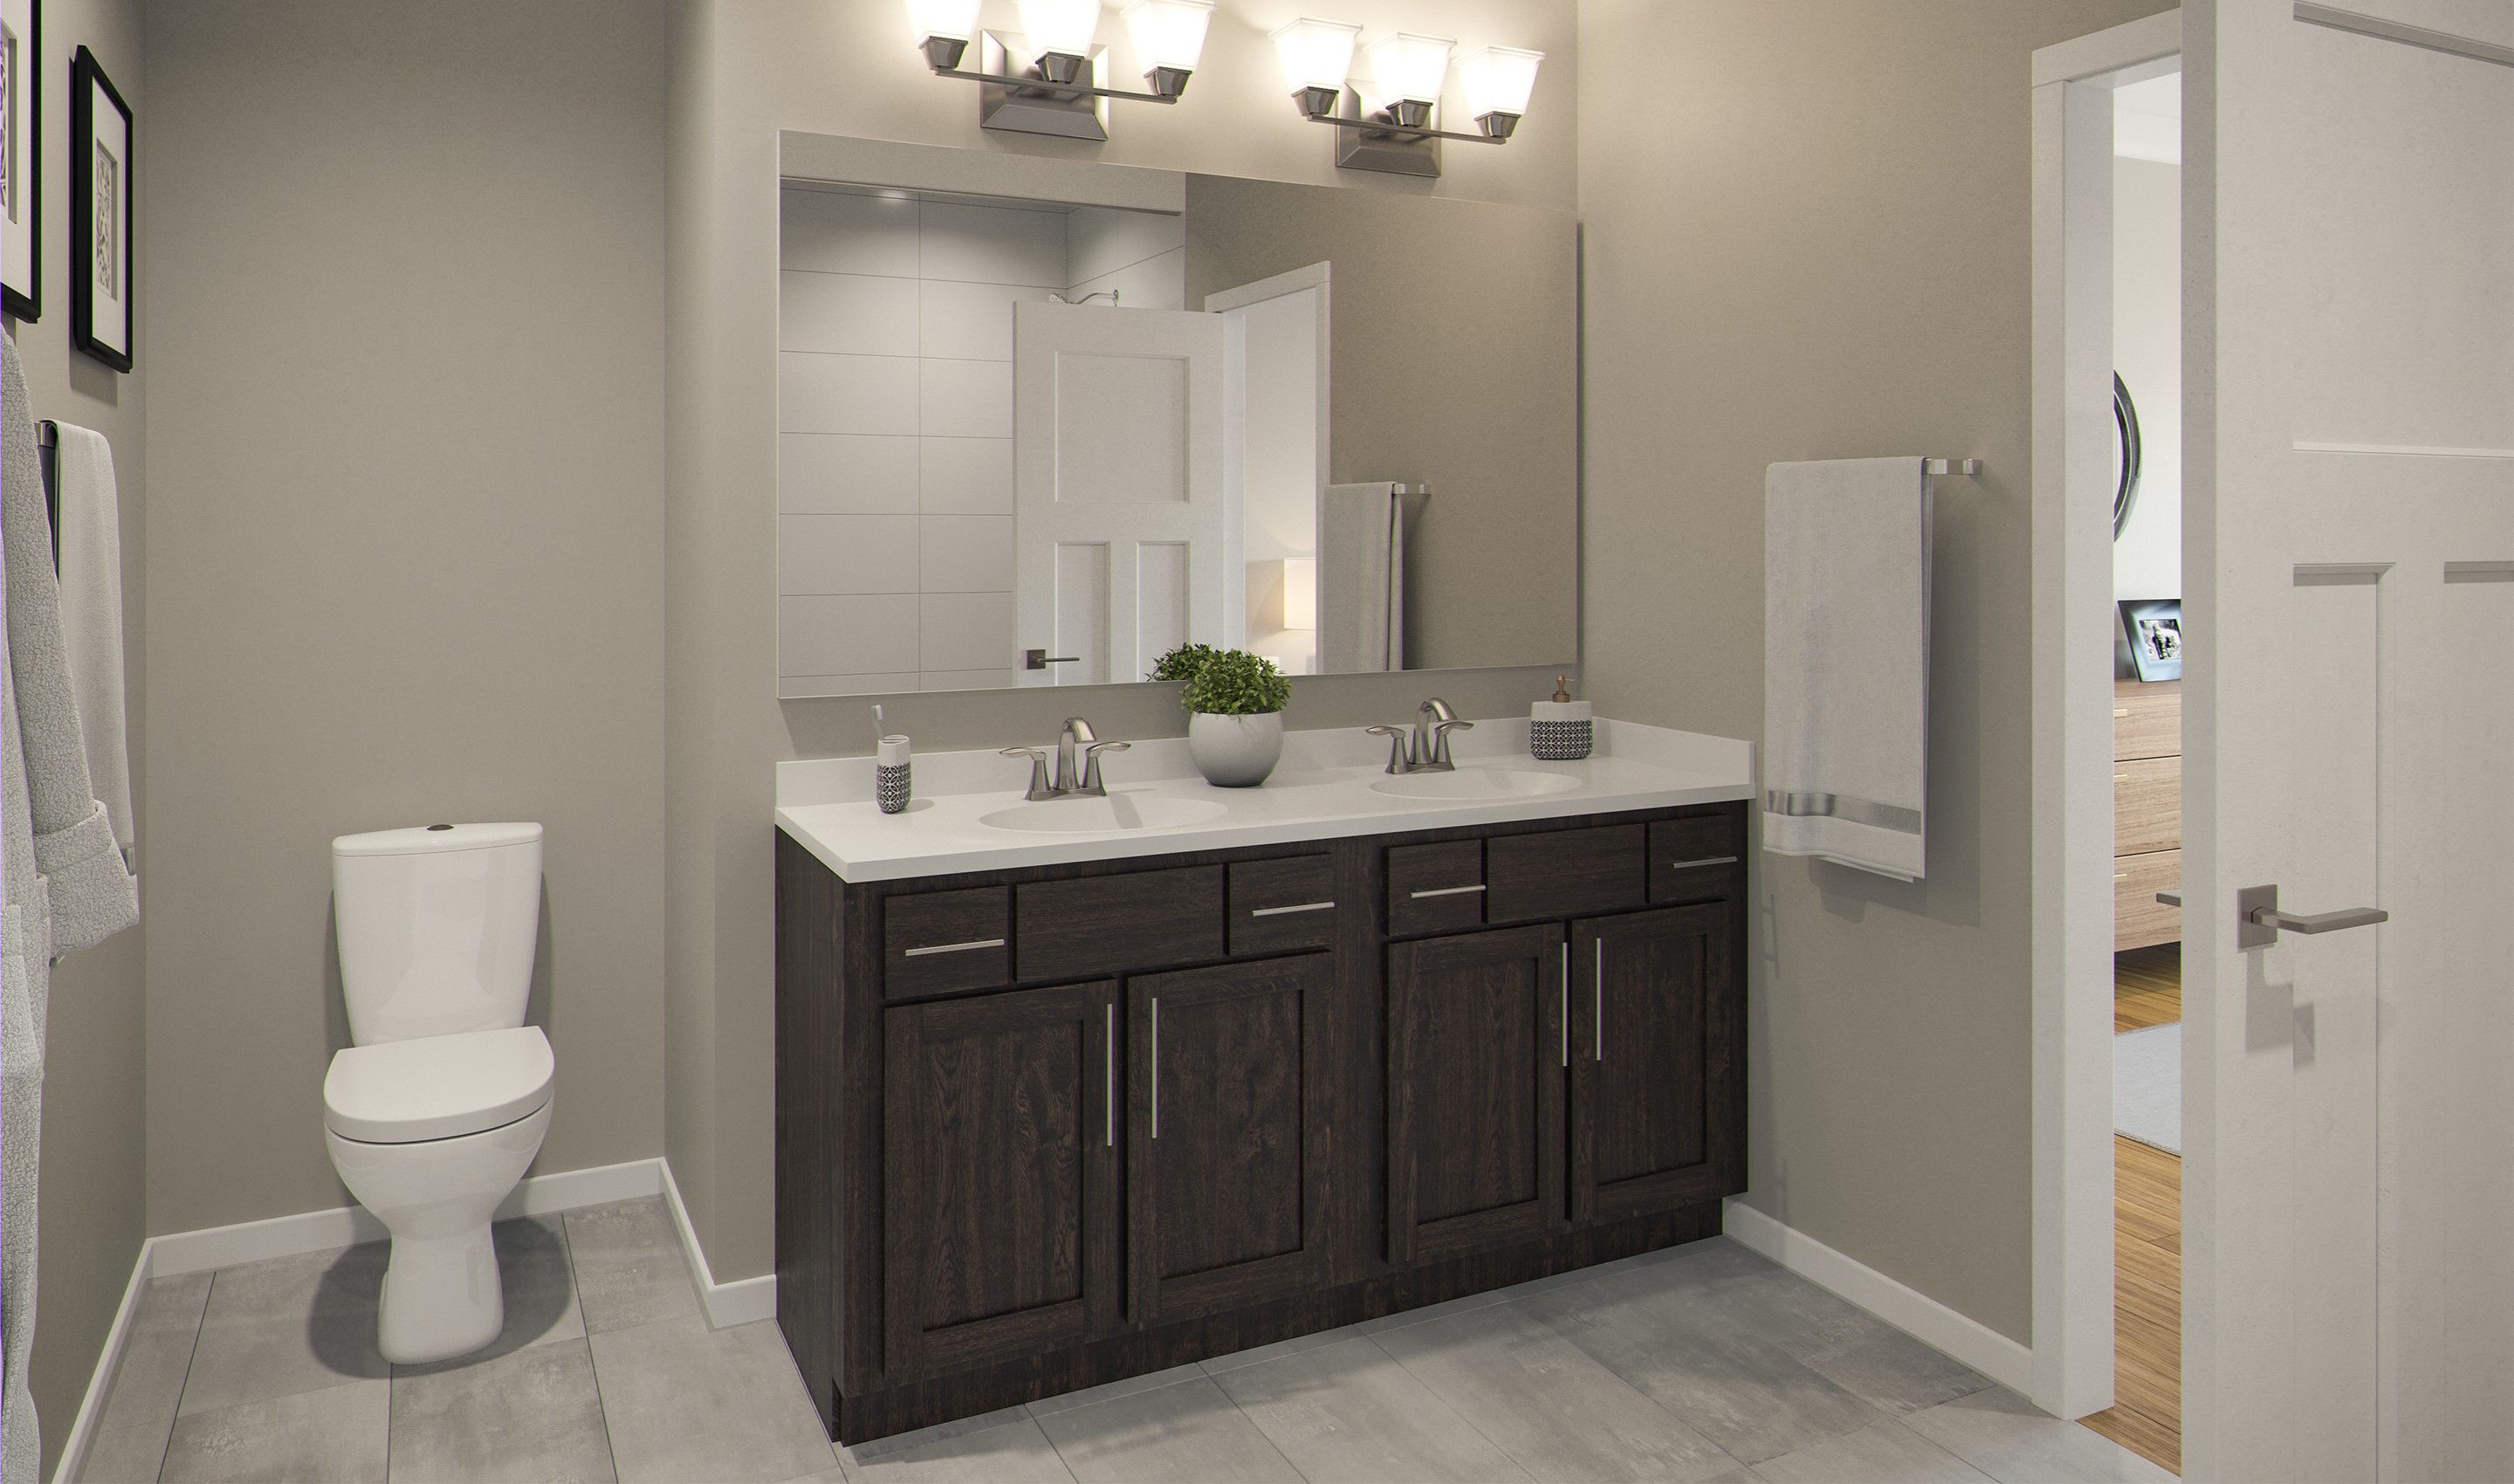 Bathroom featured in the Emmerich By K. Hovnanian® Homes in Chicago, IL